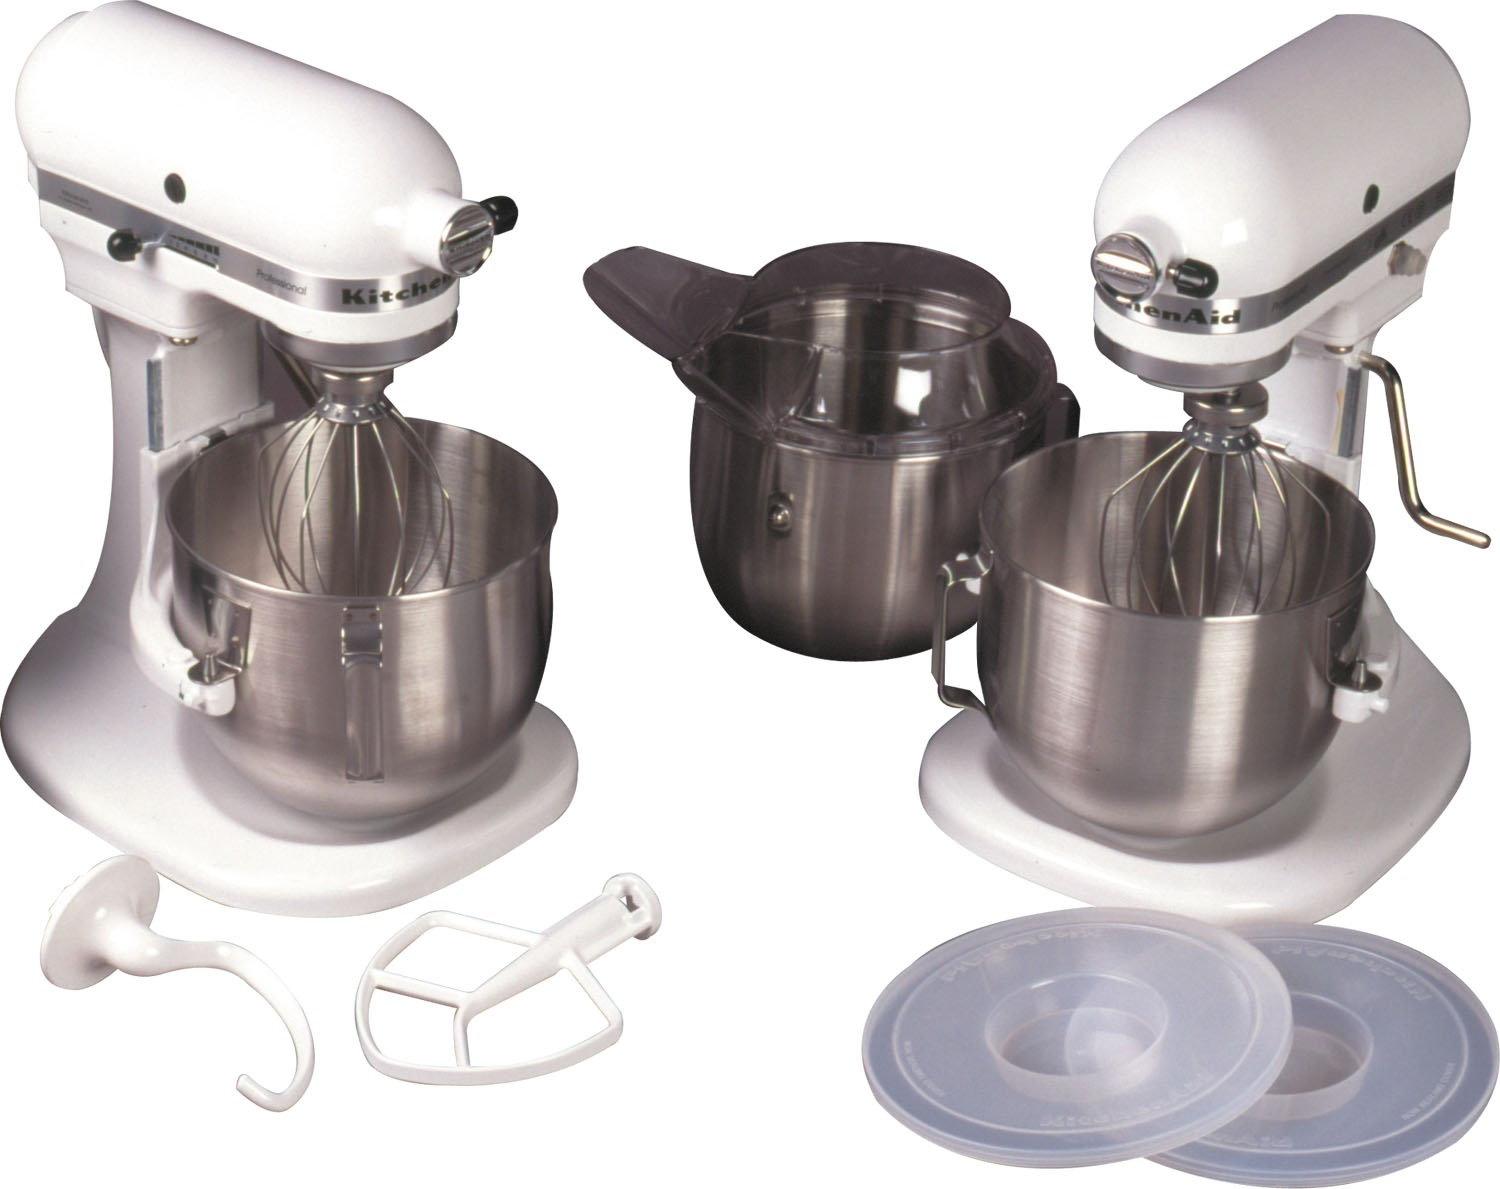 Kitchen mixer attachments Photo - 7